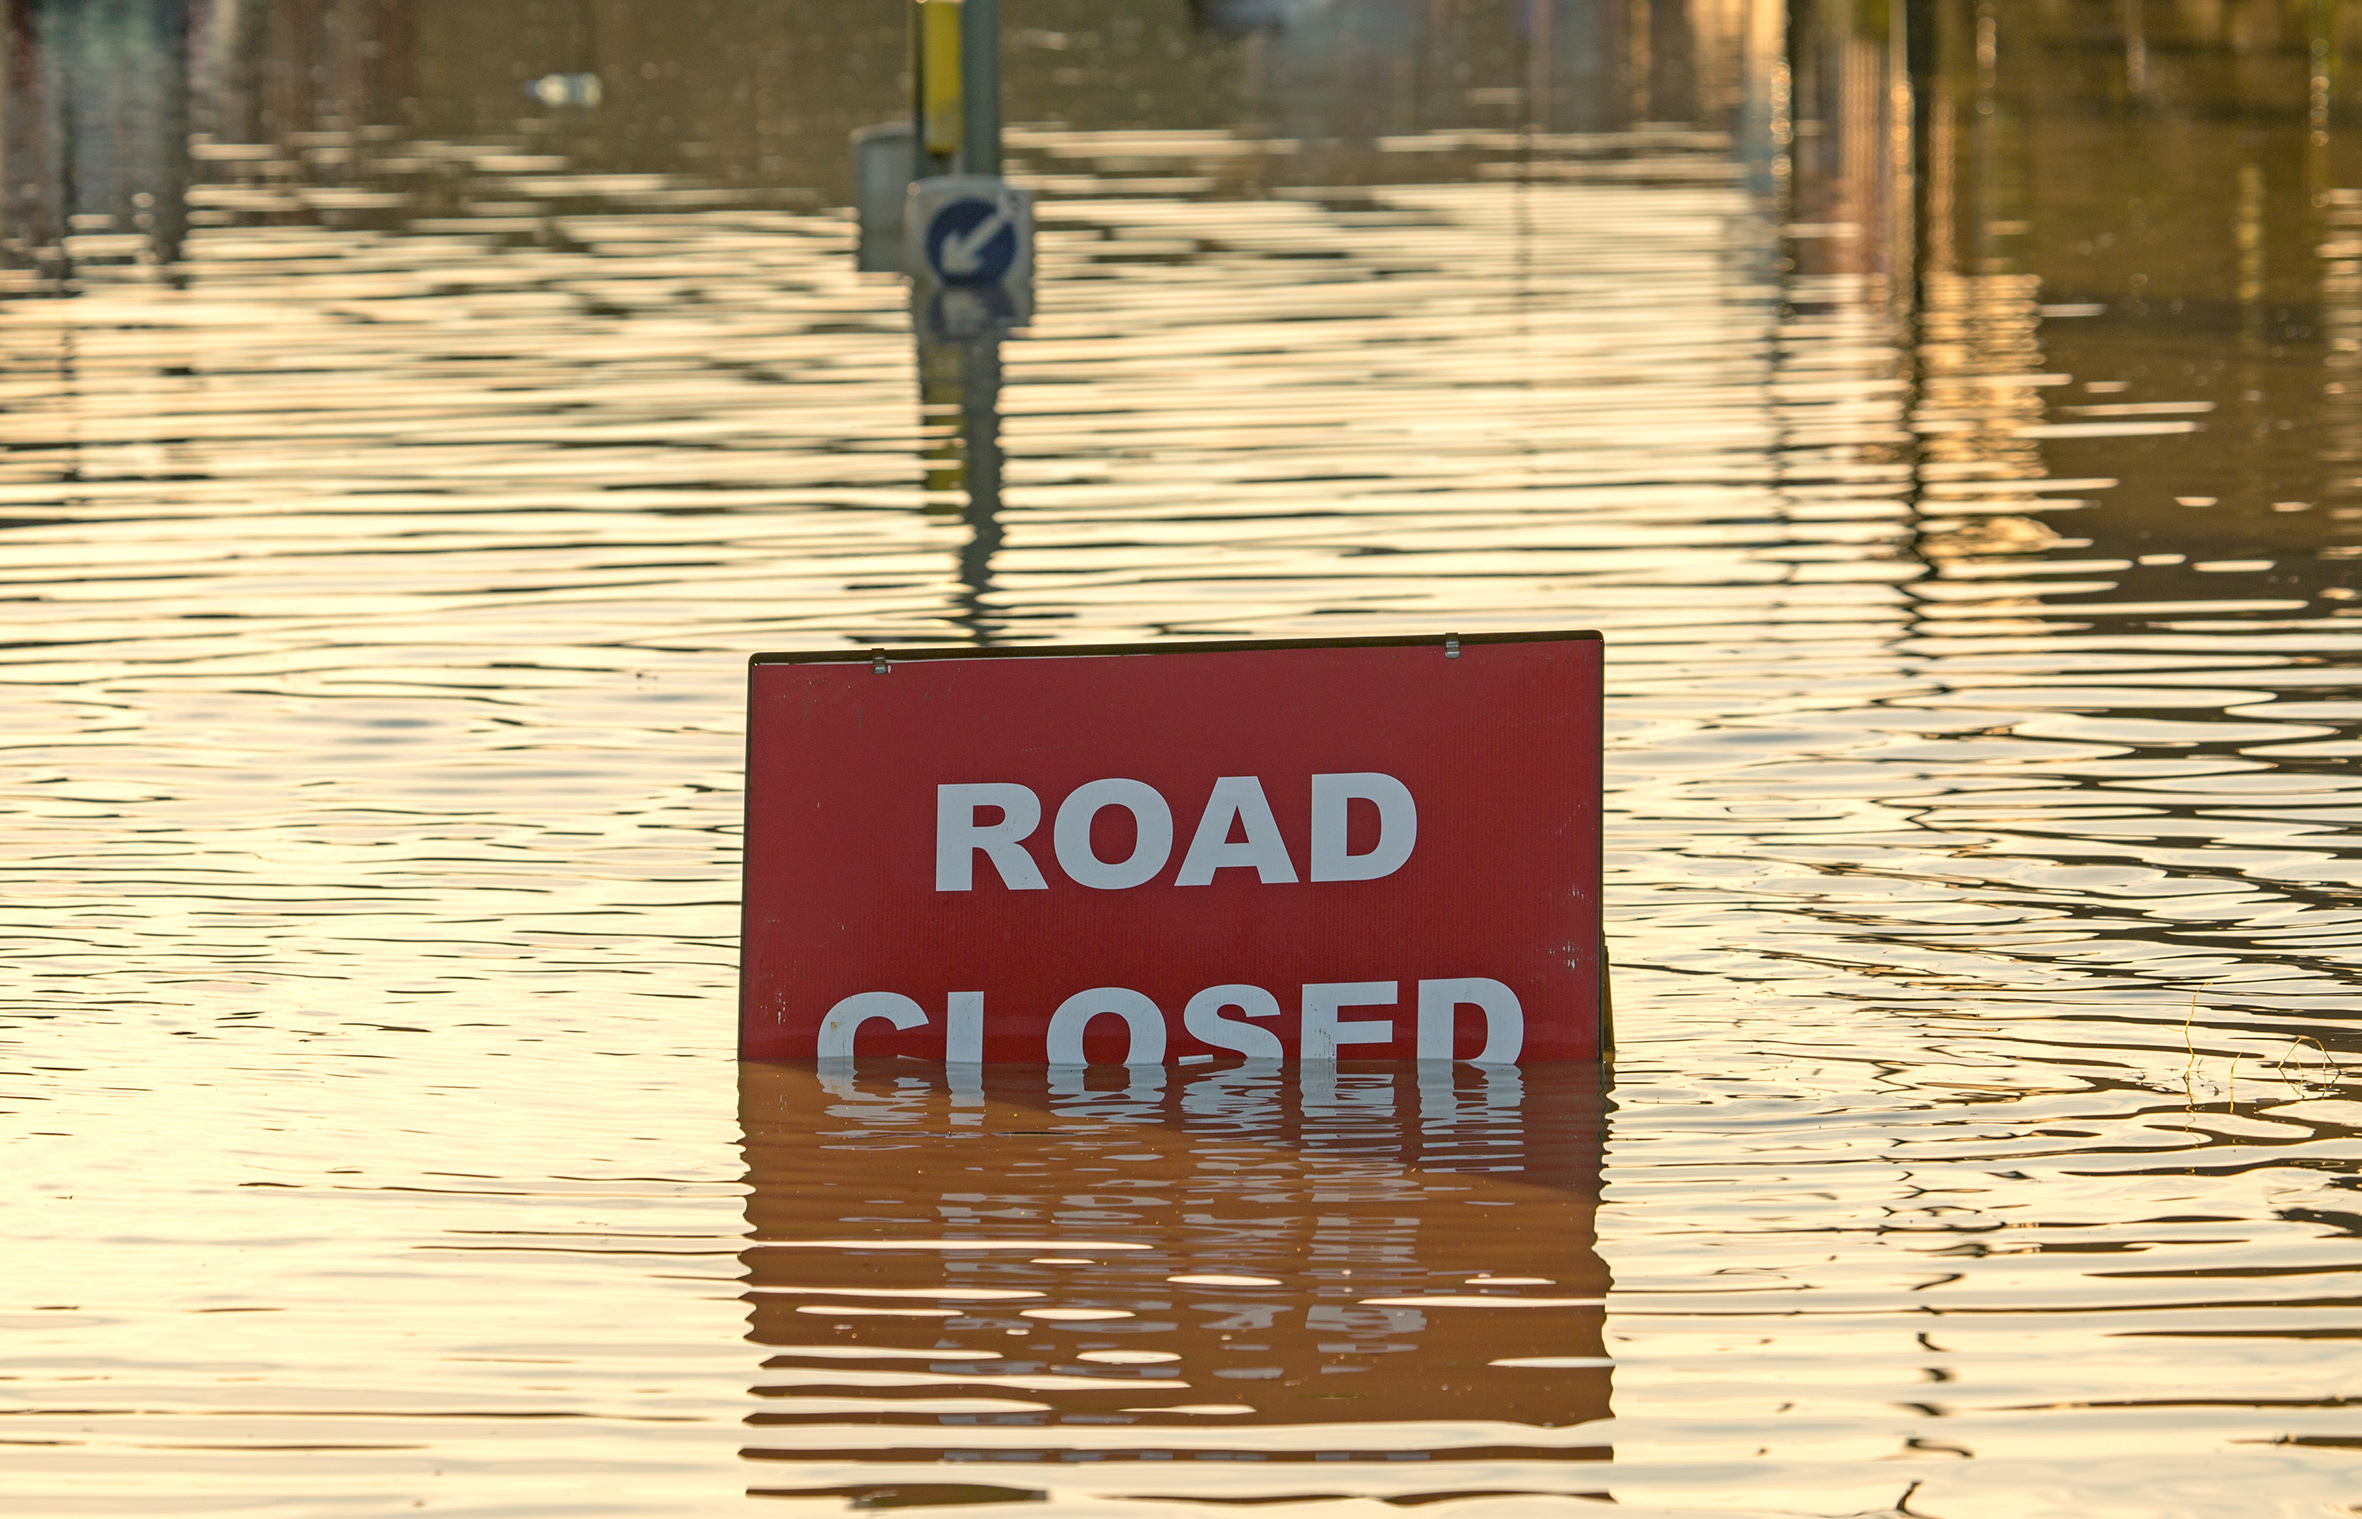 These roads are still closed after the flooding in London last night